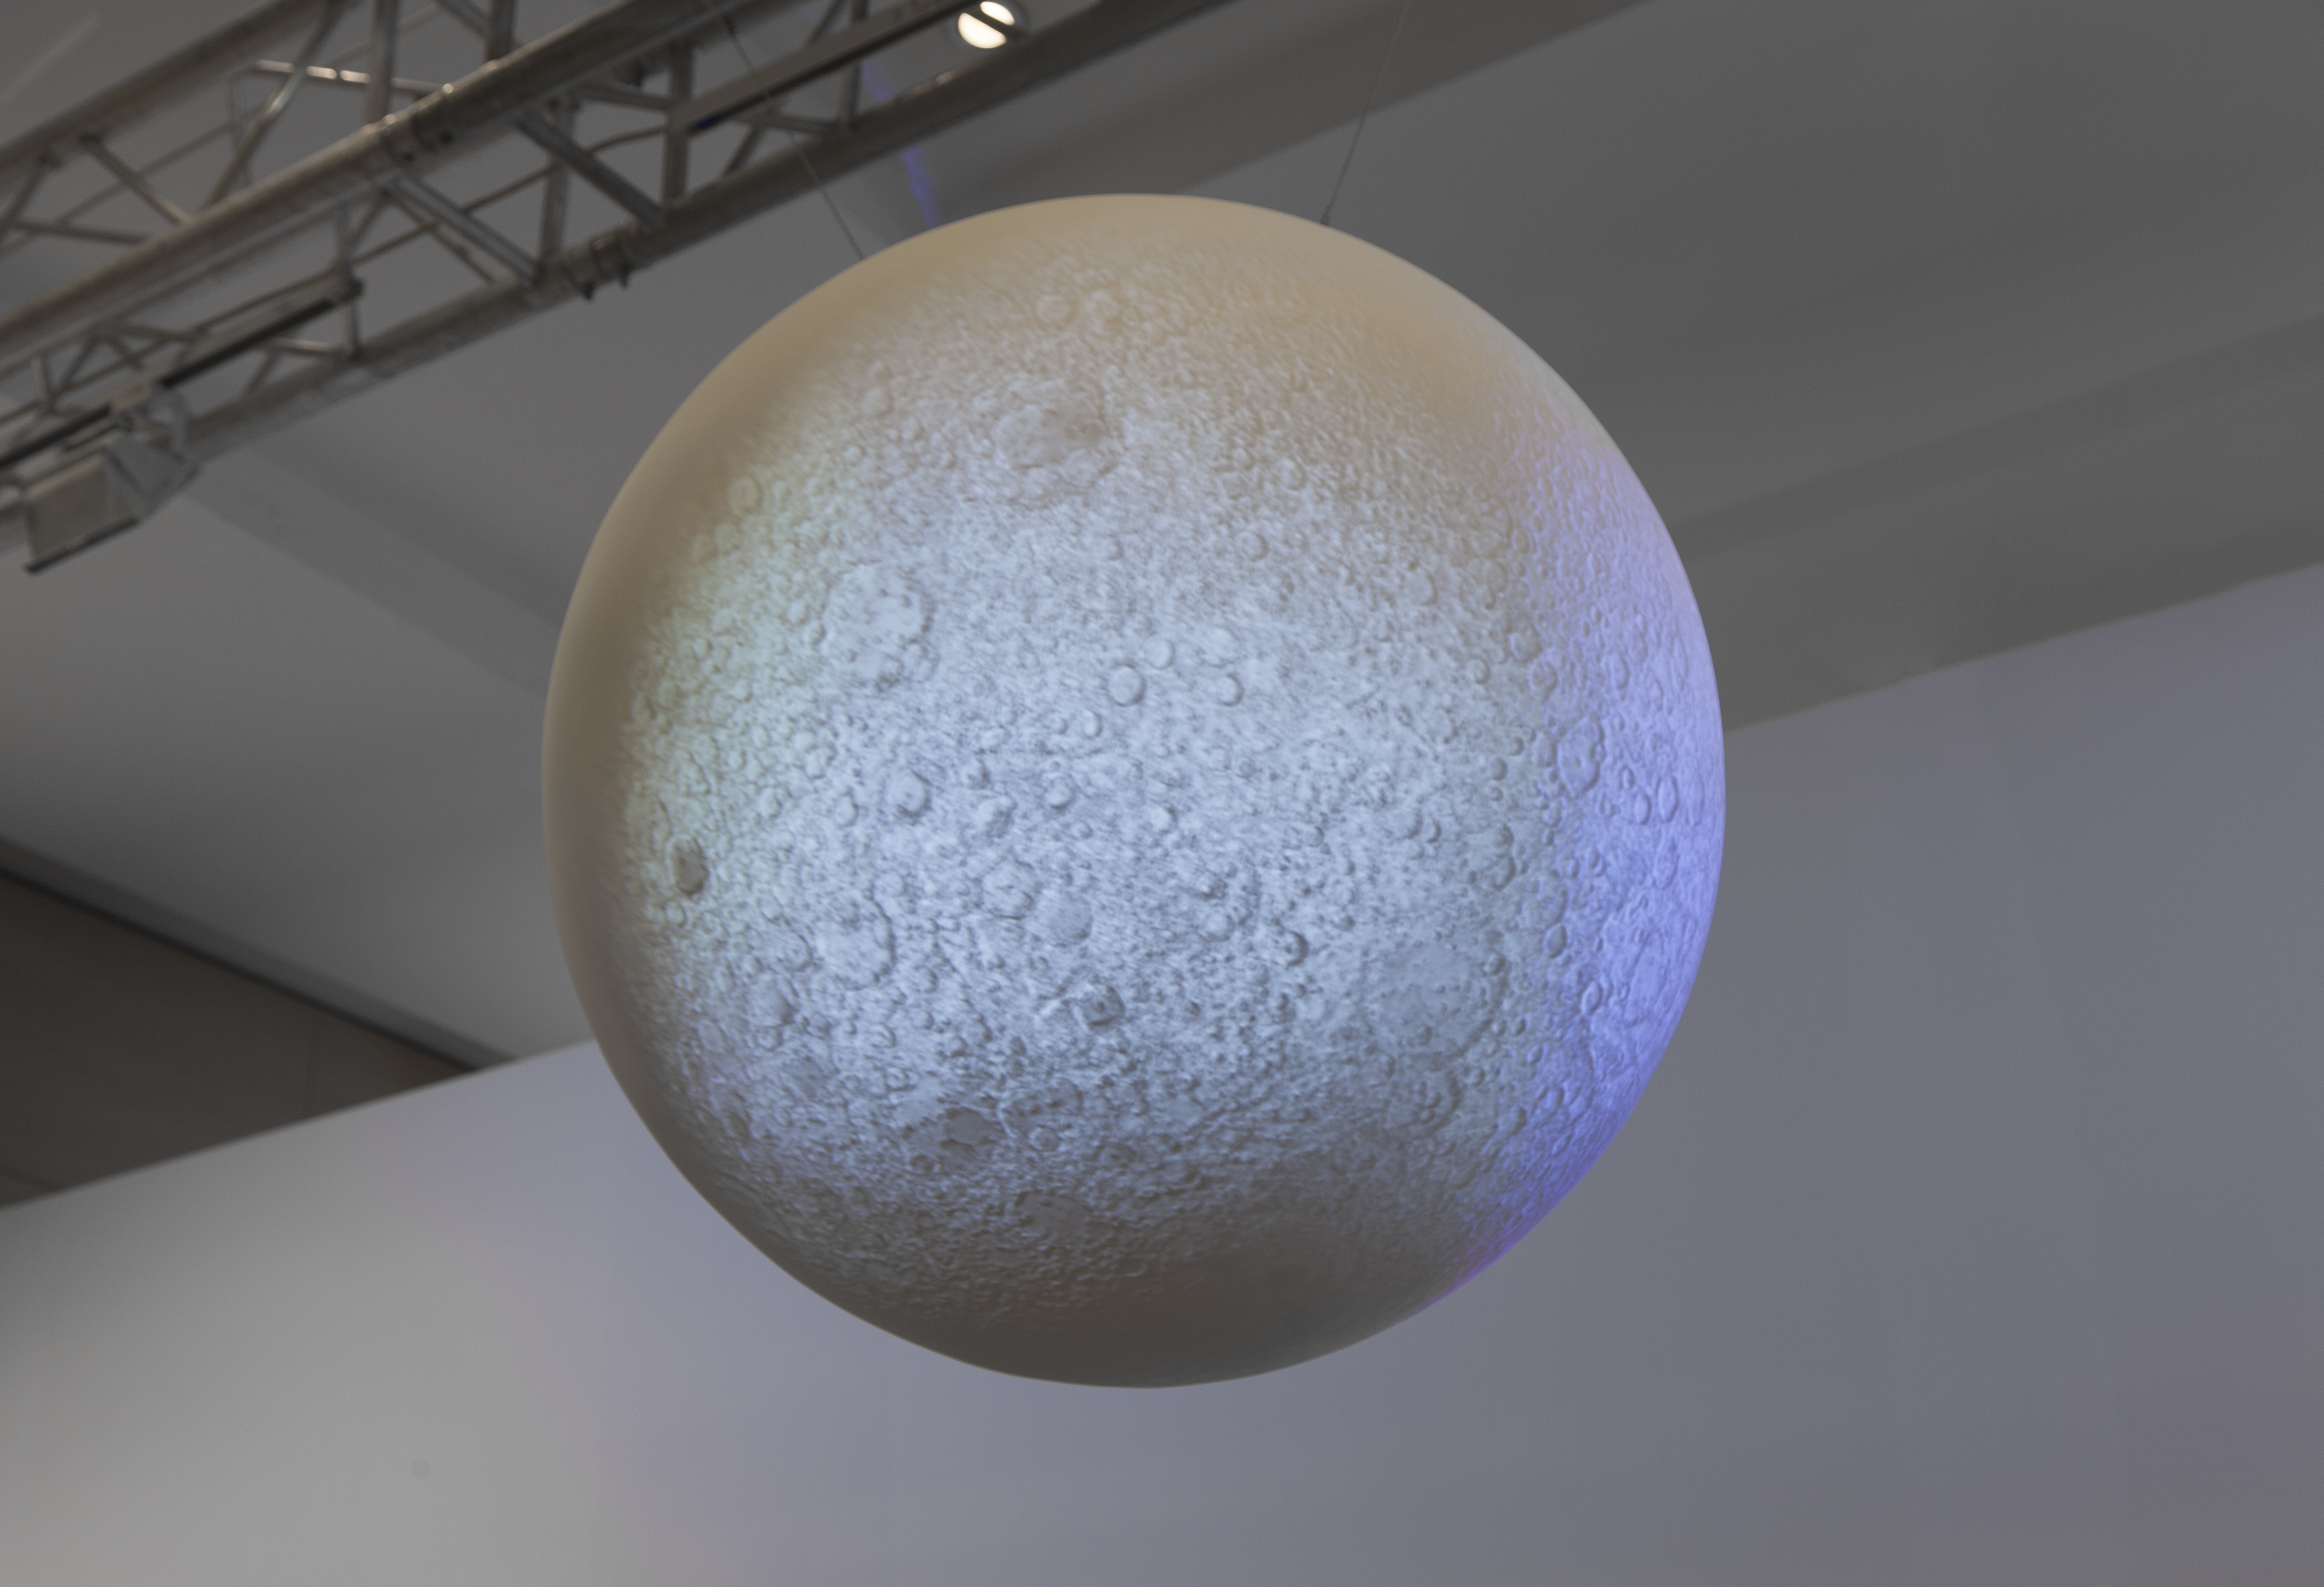 Moon, 2014, video projection on spherical sculpture by Johan Bergström Hyldahl